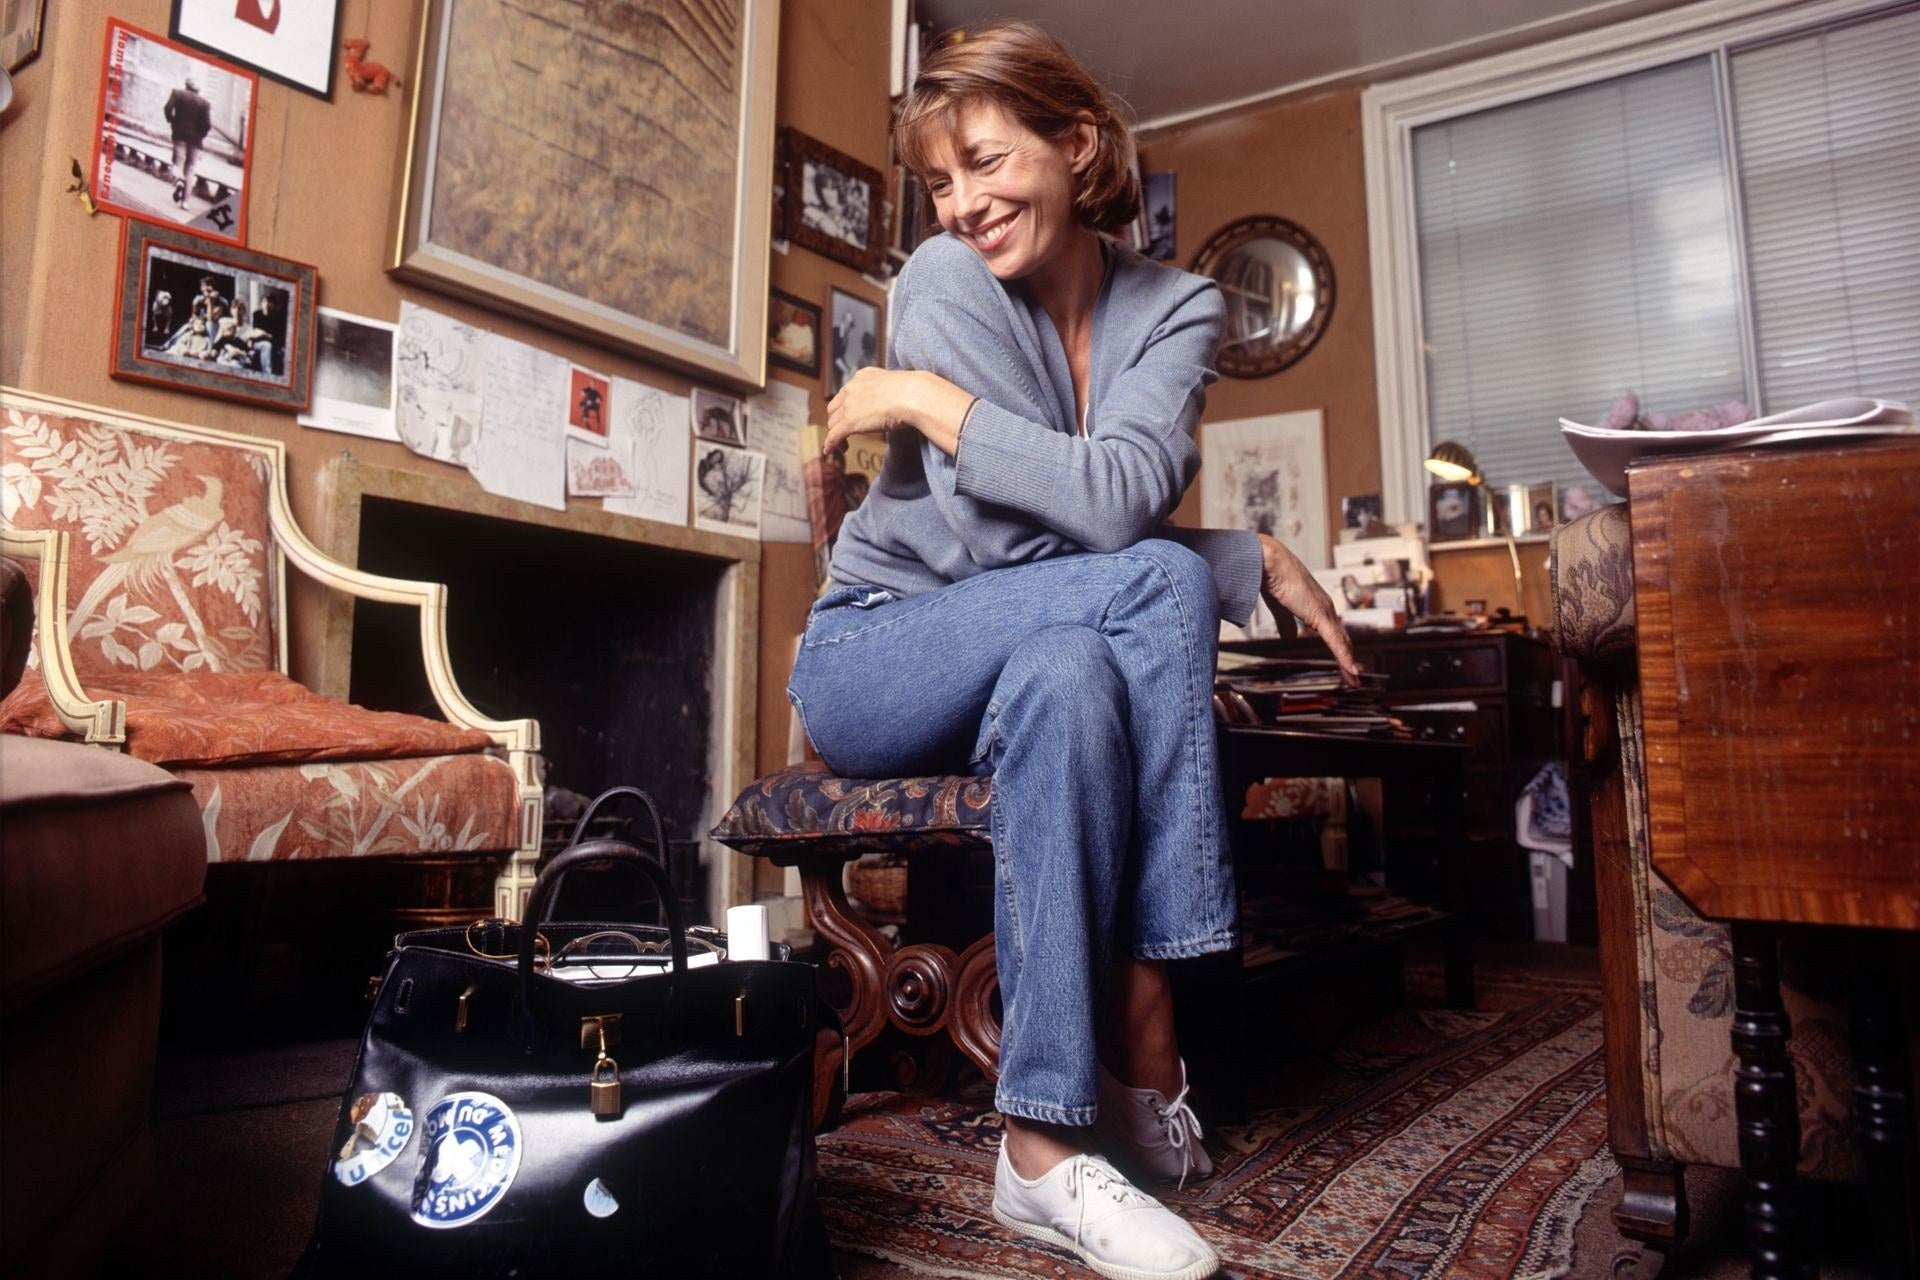 Jane and Her Birkin - The History and Facts